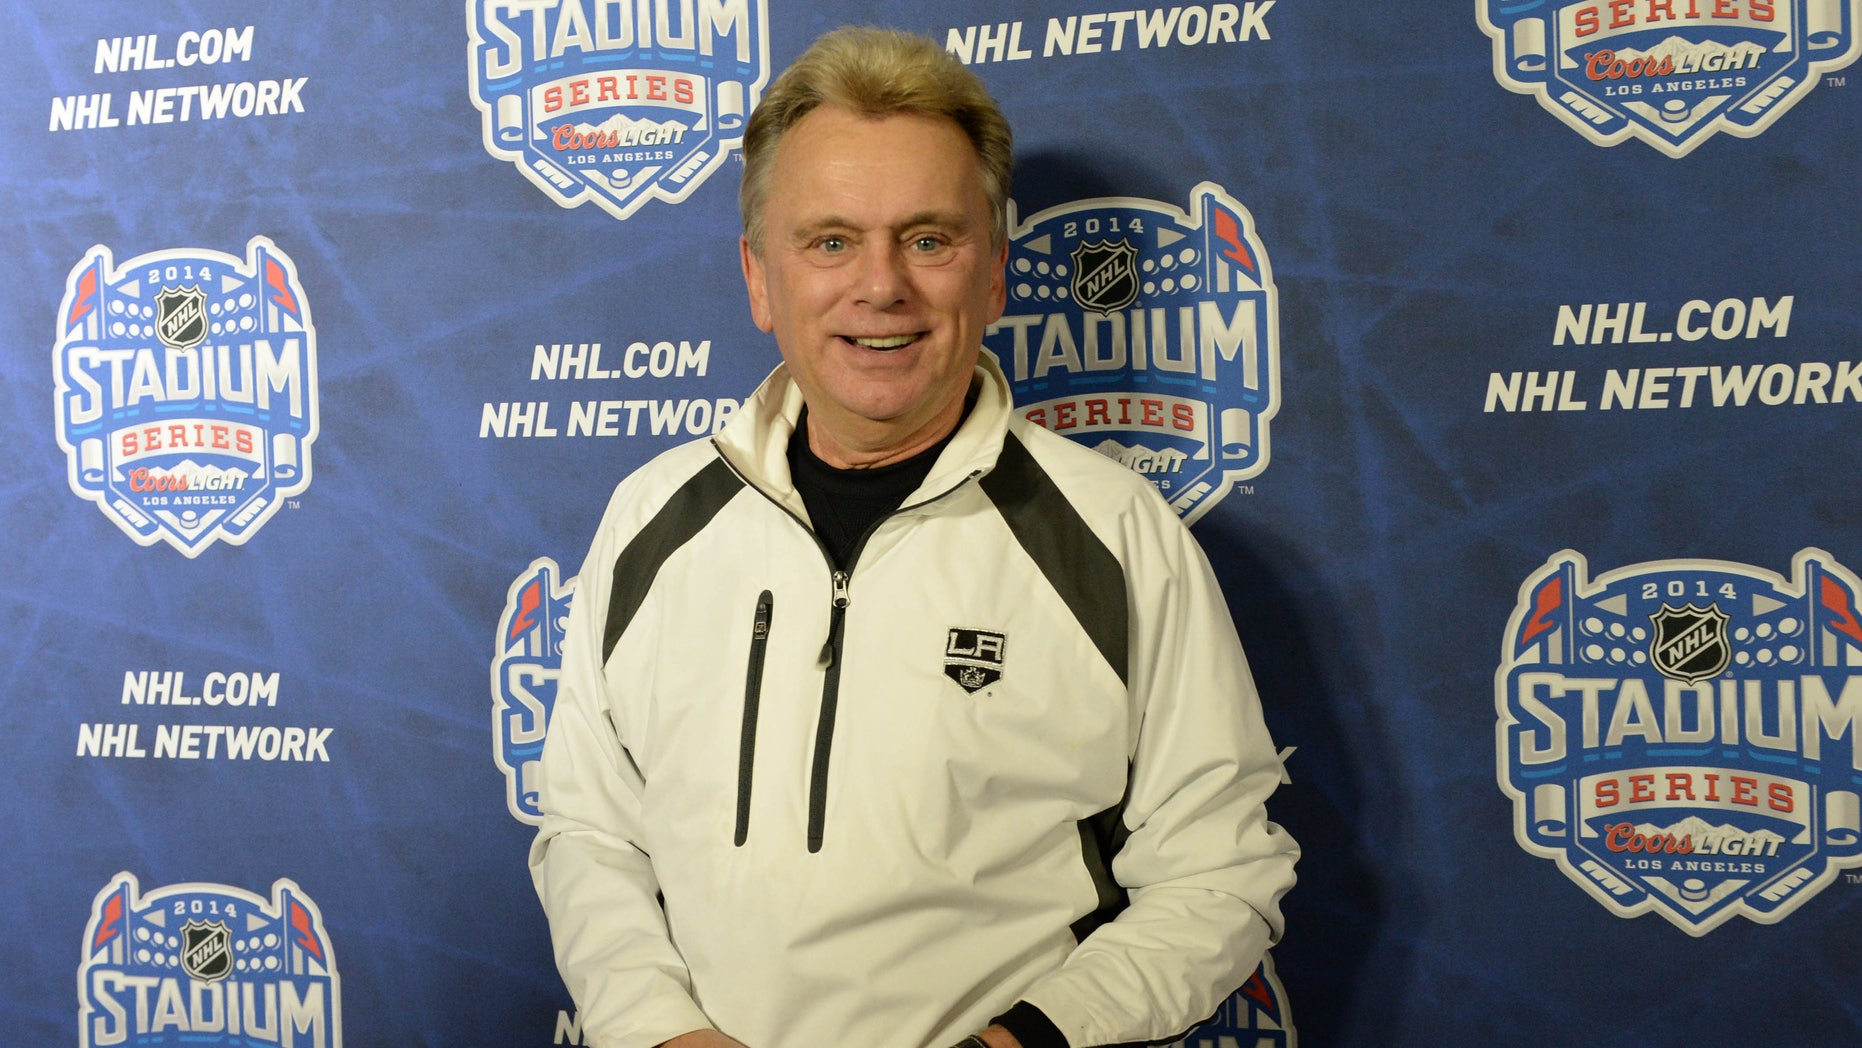 Jan 25, 2014.  Pat Sajak arrives on the red carpet for the Stadium Series hockey game between the Anaheim Ducks and the Los Angeles Kings at Dodger Stadium.